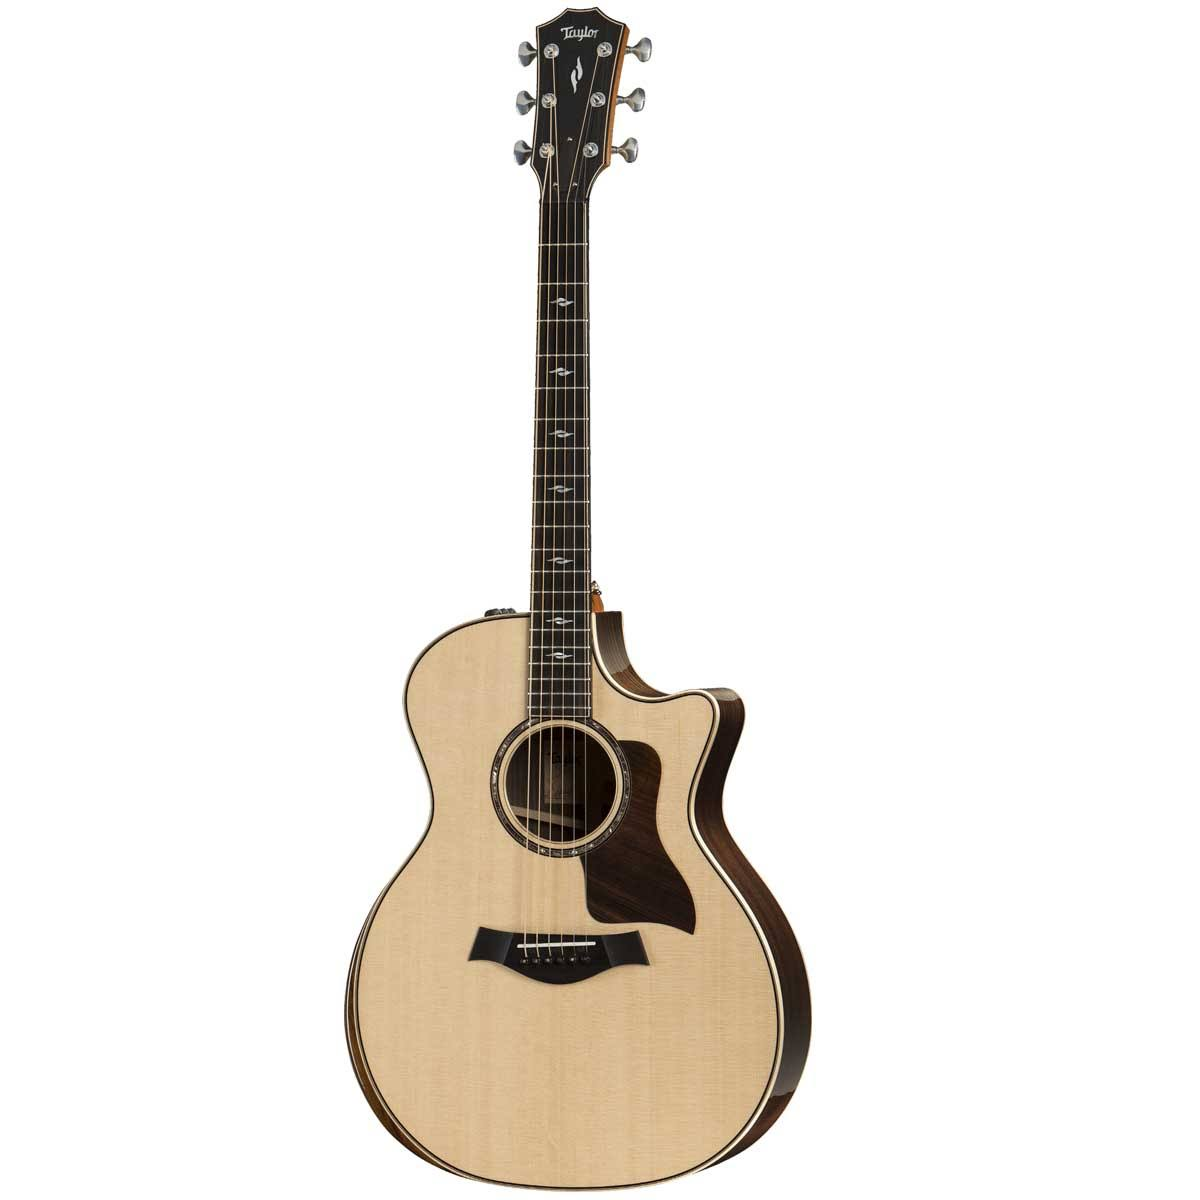 Taylor 814ce DLX V-class Grand Auditorium Acoustic Electric Guitar - Natural